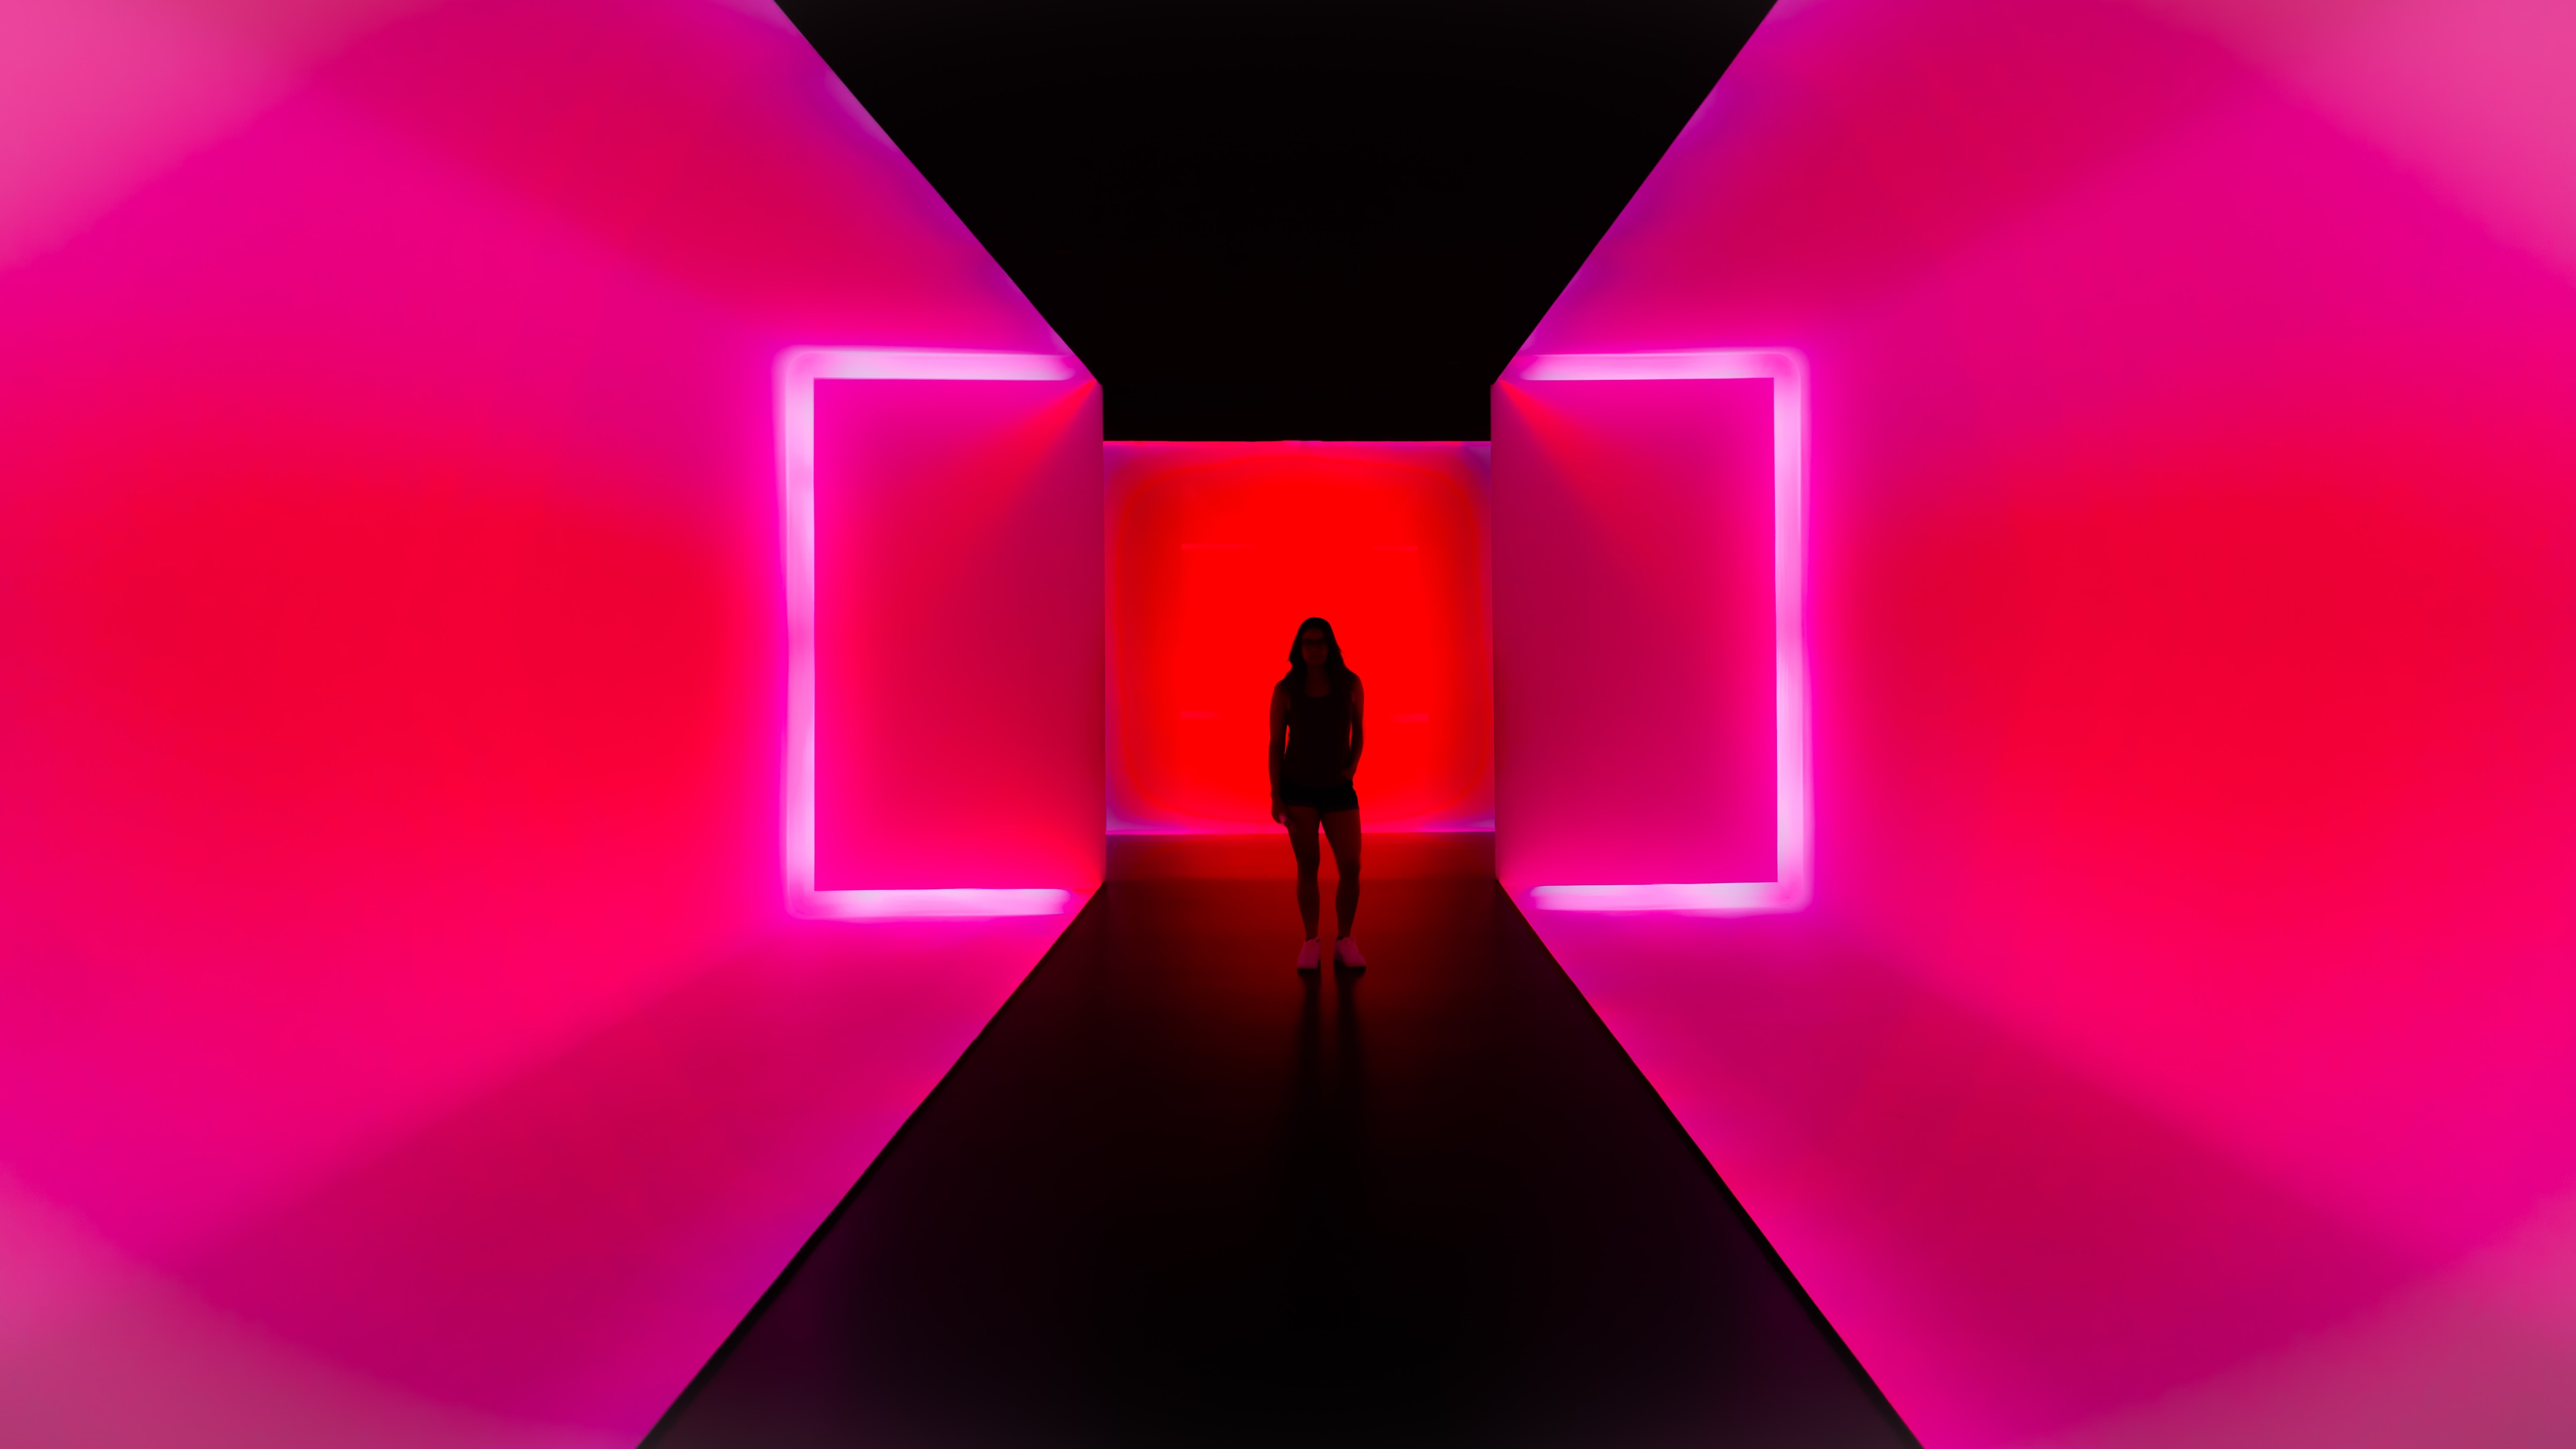 attention grabbing image of female model silhouetted on bright pink neon background